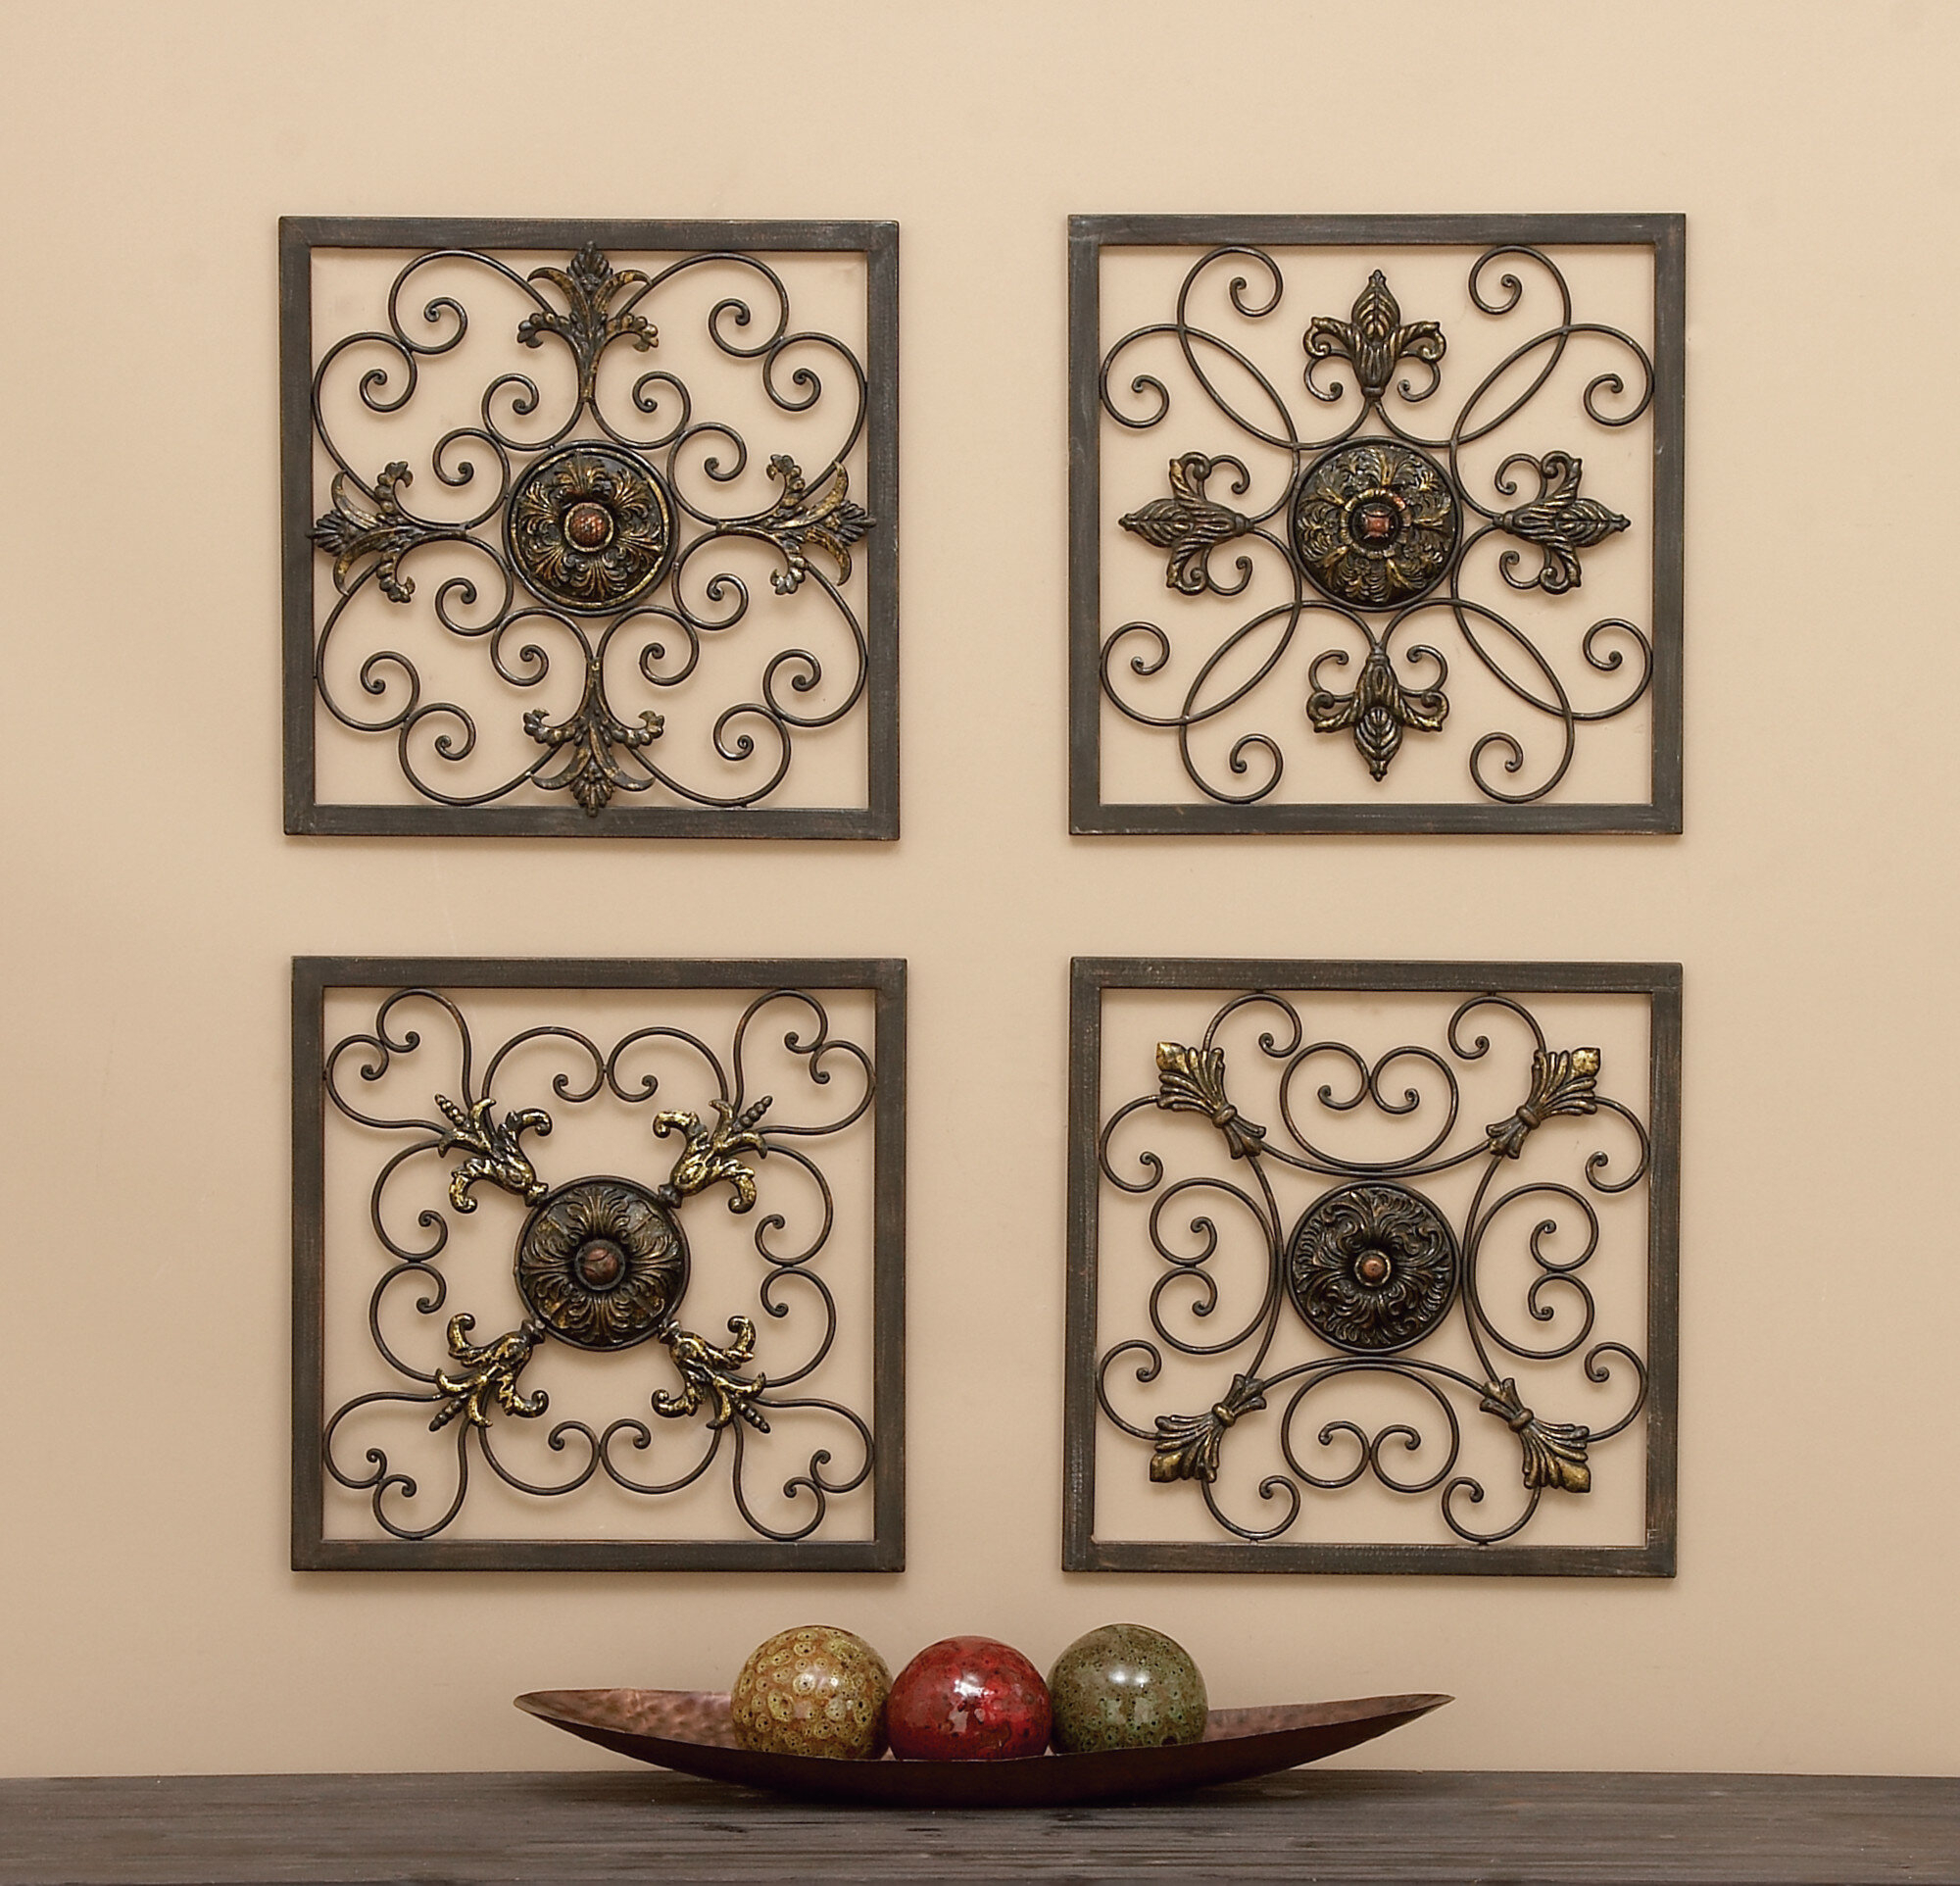 4 Piece Wall Decor Set | Wayfair Within 4 Piece Metal Wall Plaque Decor Sets (View 2 of 30)